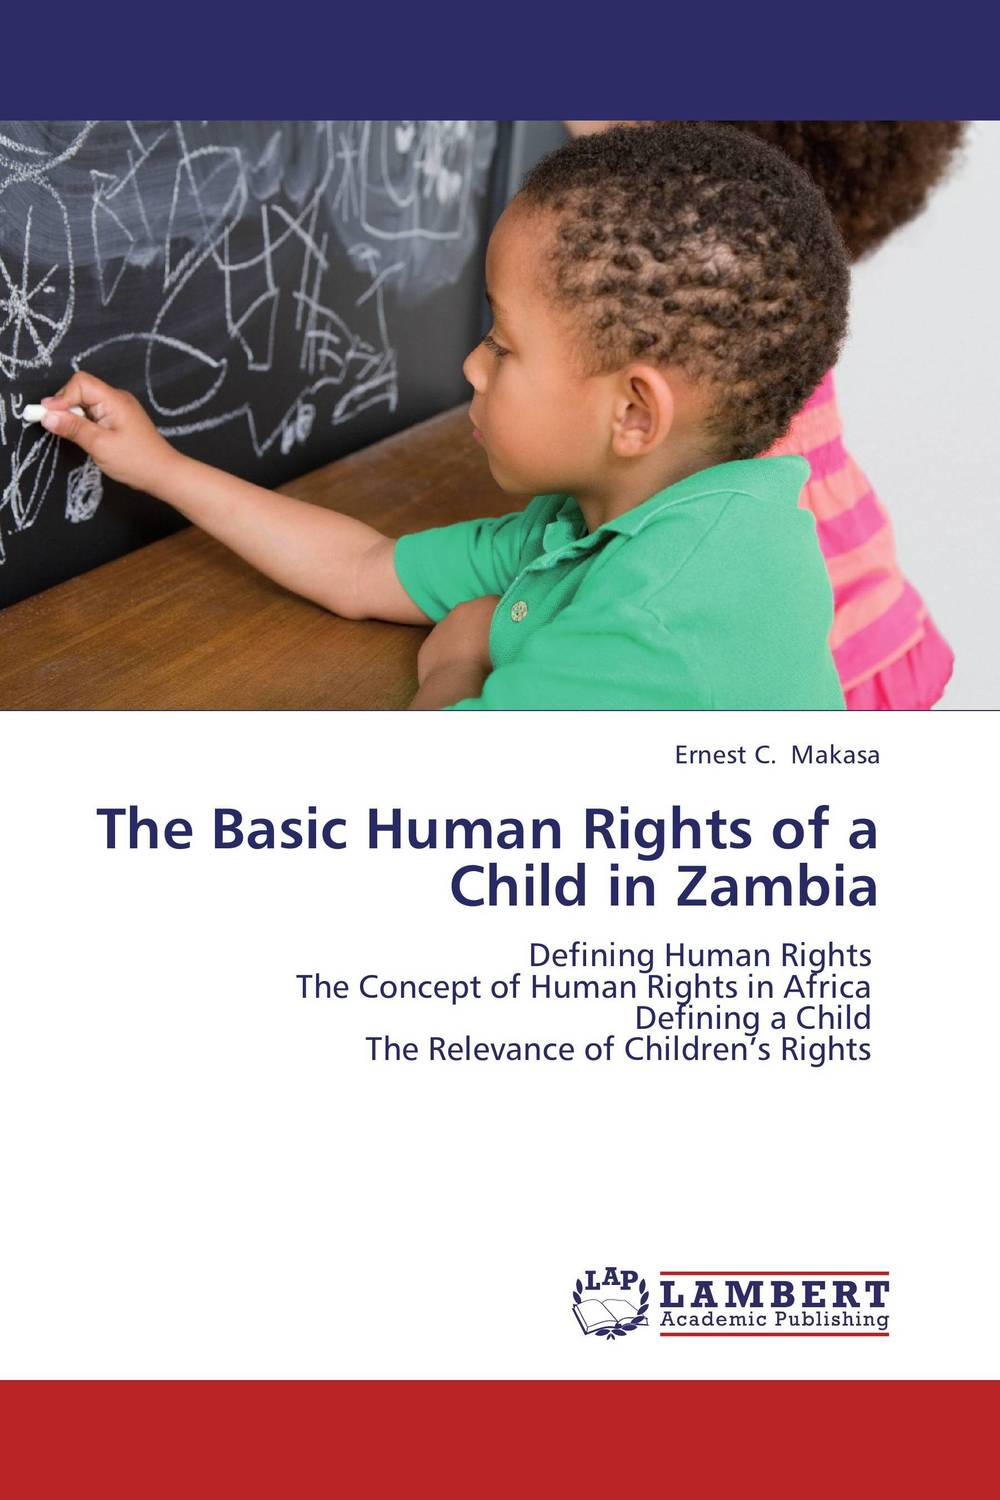 The Basic Human Rights of a Child in Zambia foreign policy as a means for advancing human rights